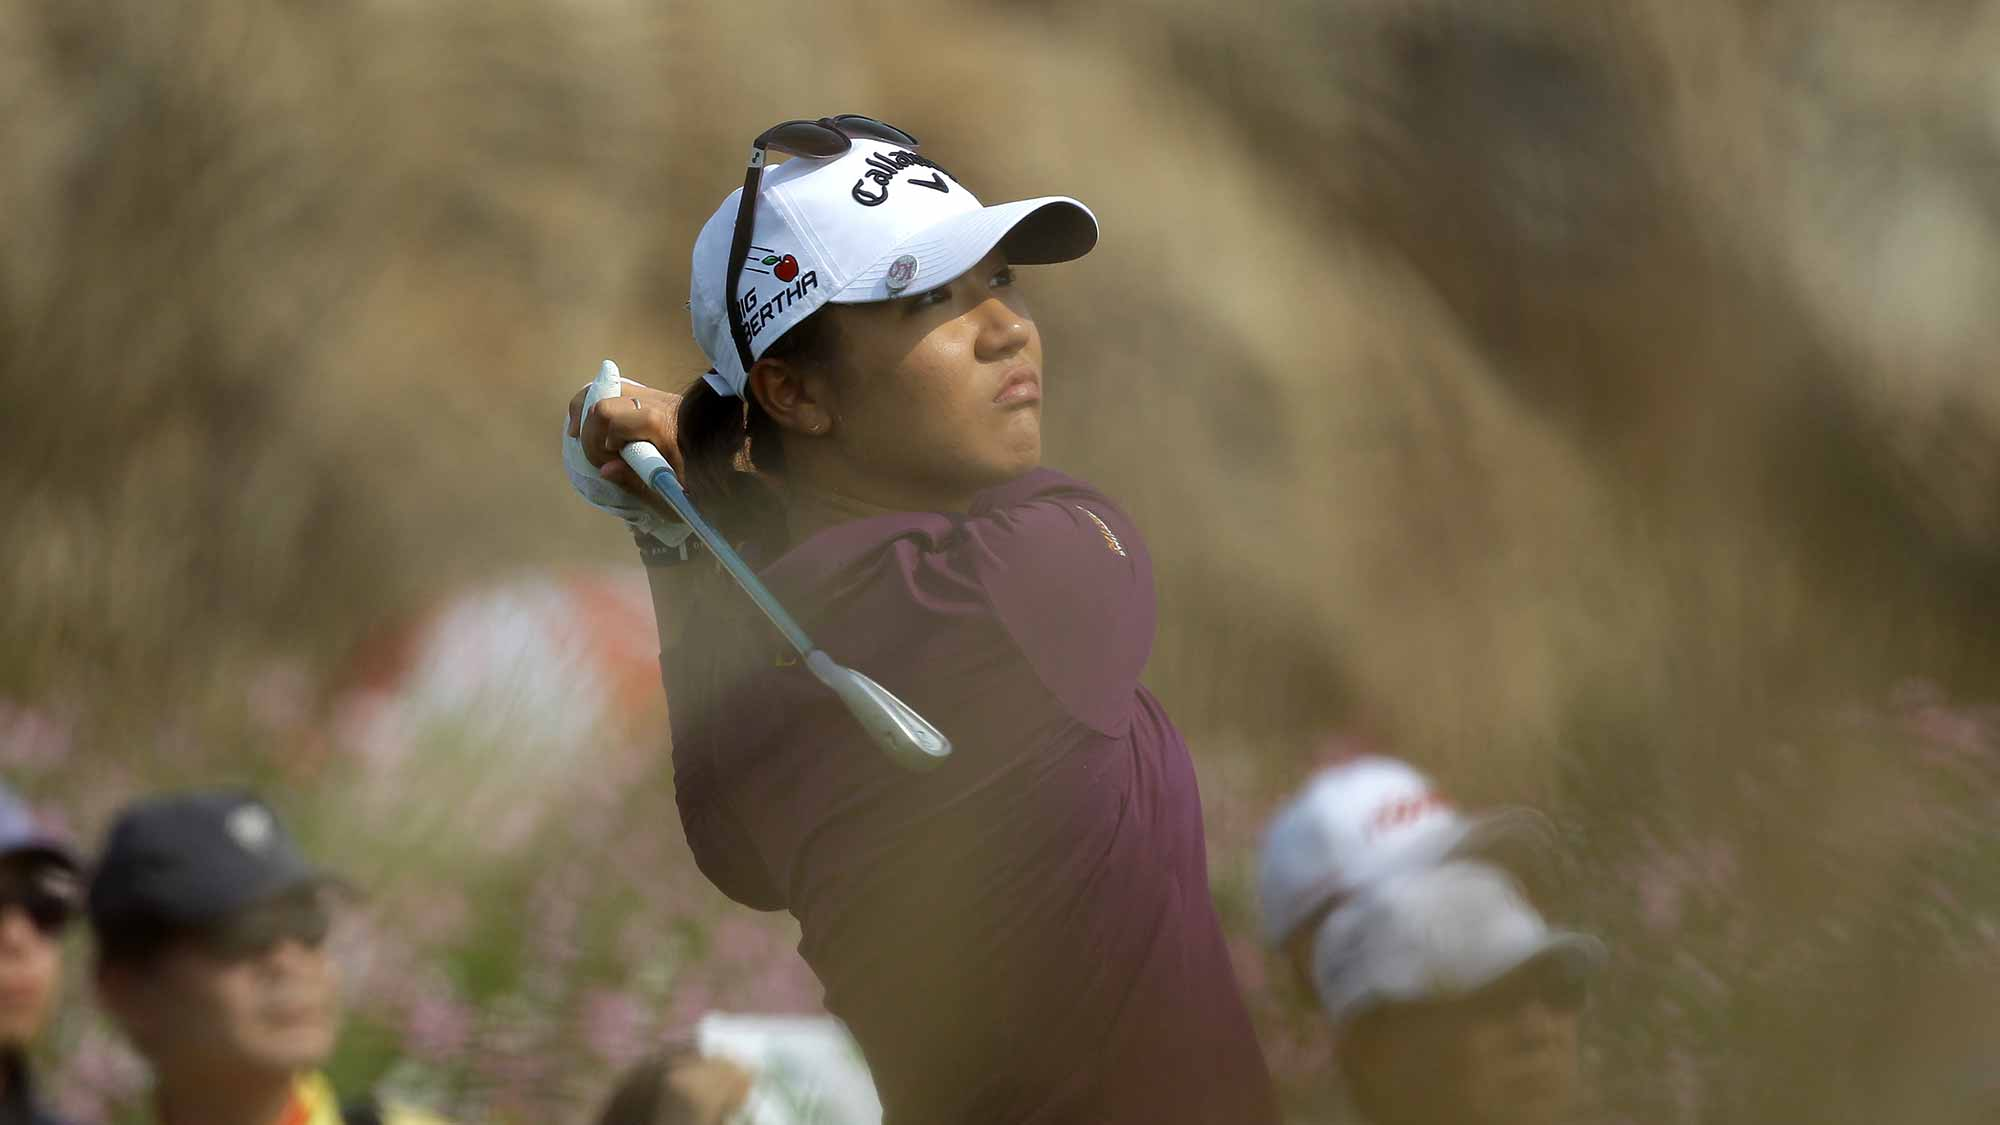 Lydia Ko of New Zealand plays a tee shot on the 3rd hole during round two of the LPGA KEB Hana Bank Championship